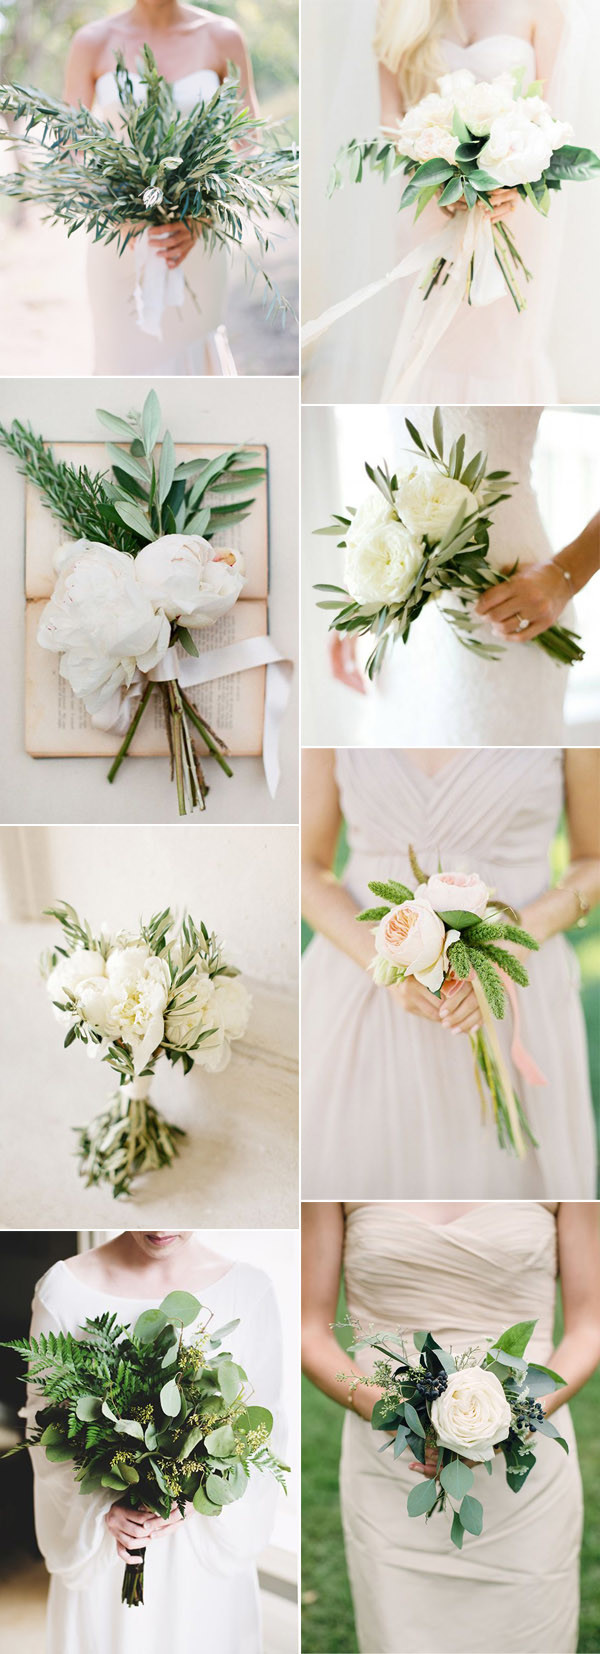 greenery wedding ideas Archives - Oh Best Day Ever